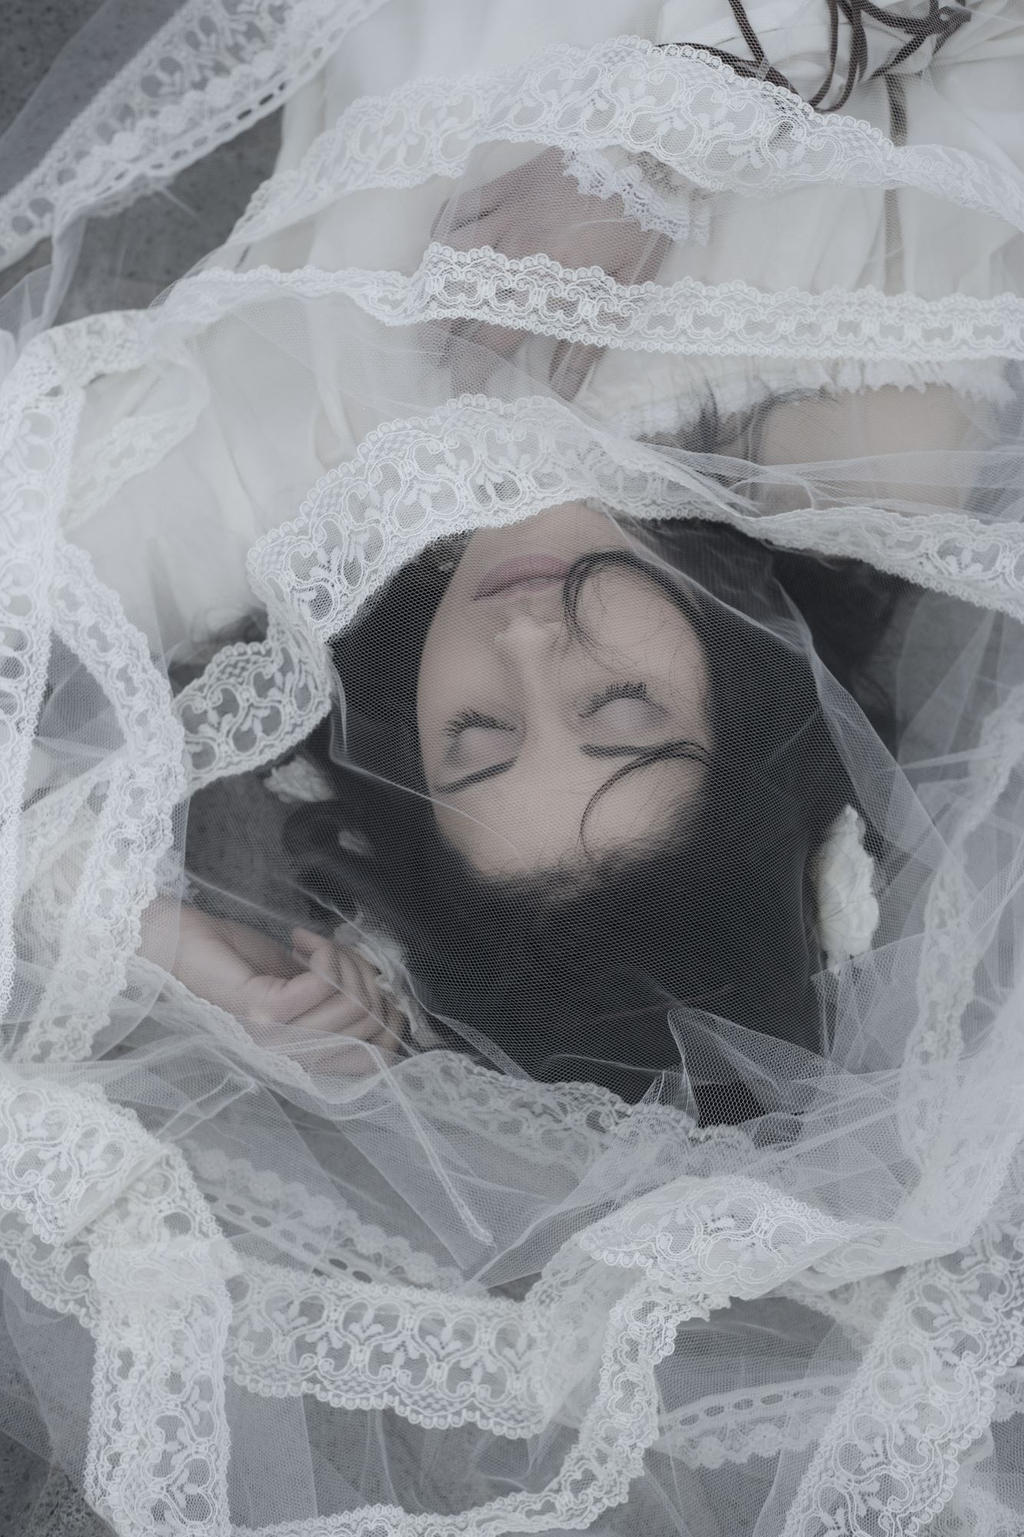 The Third bride, a Dracula ispired story